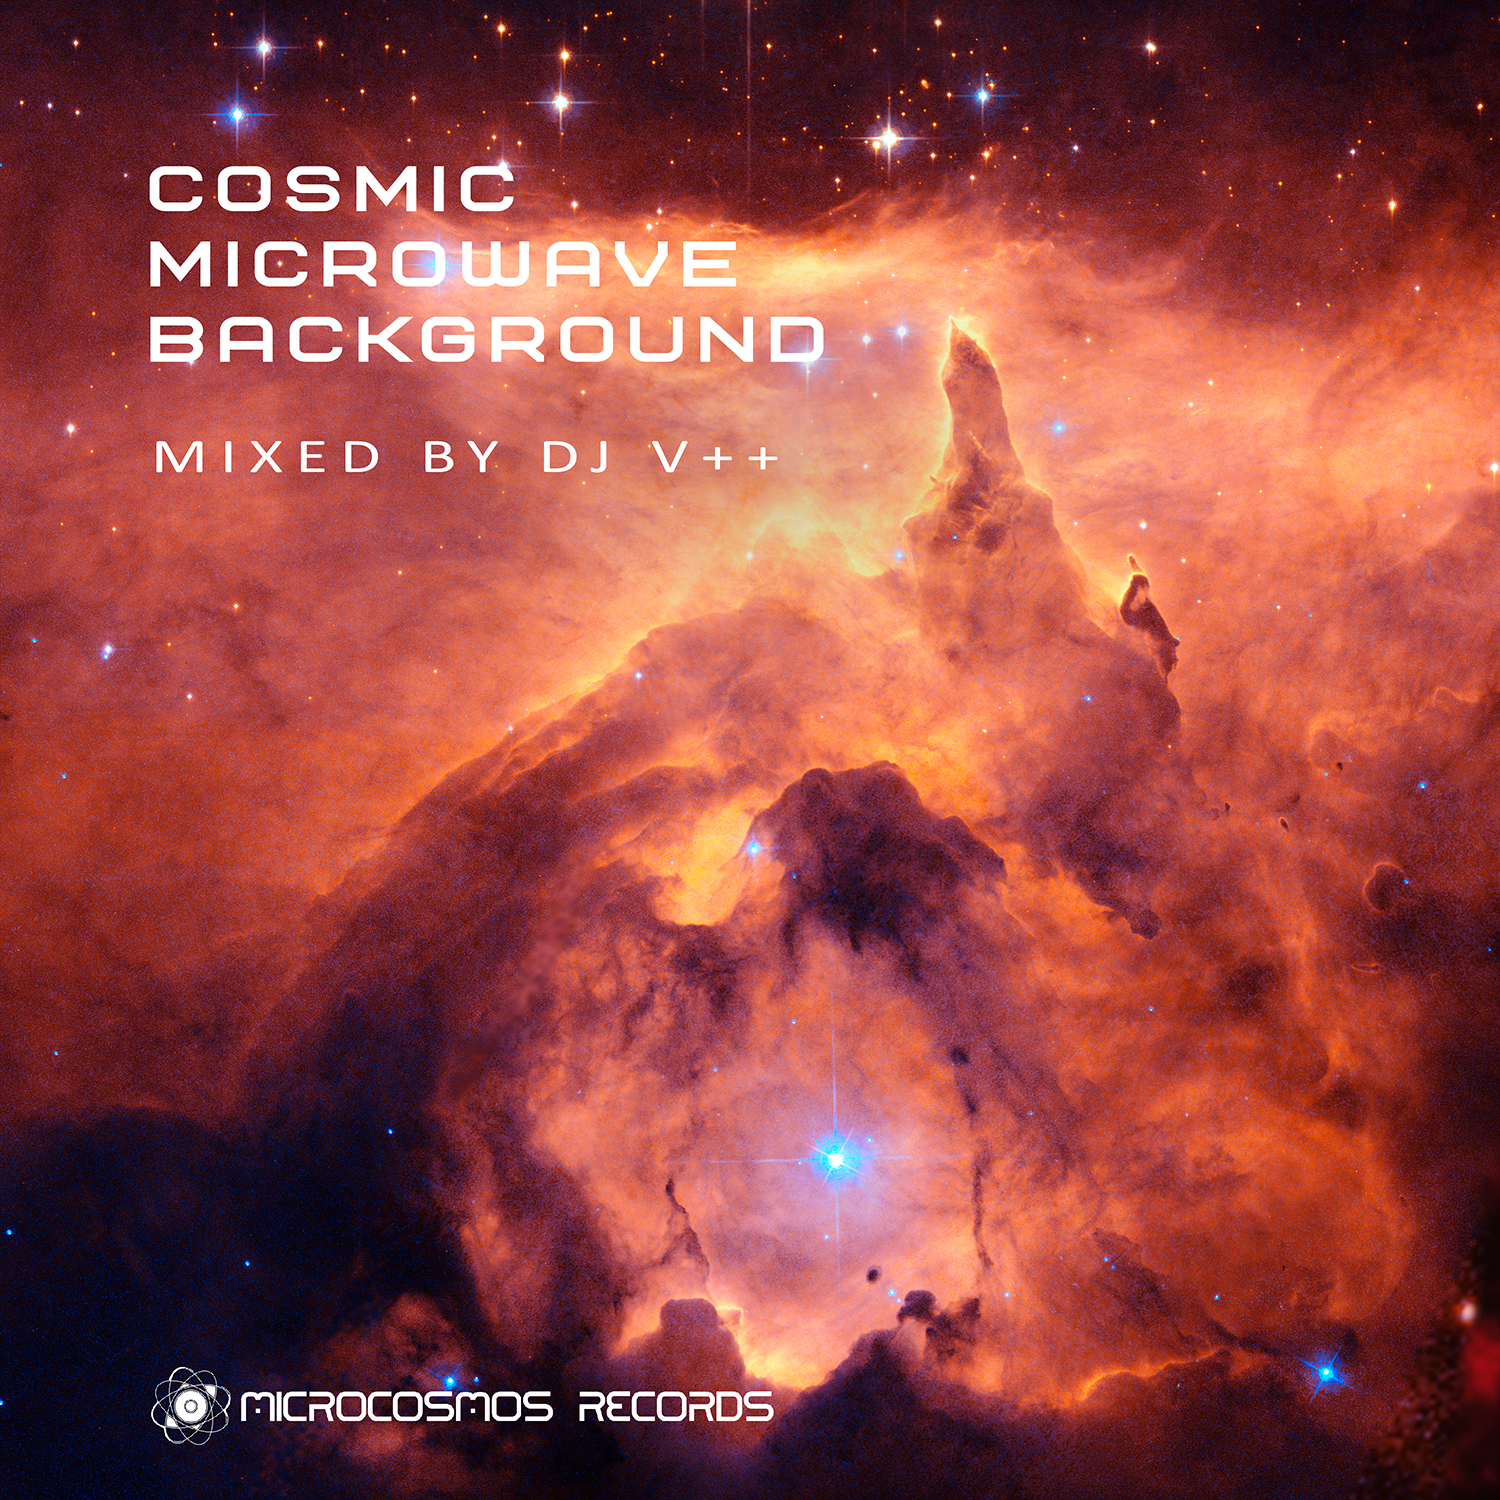 DJ V++ — Cosmic Microwave Background